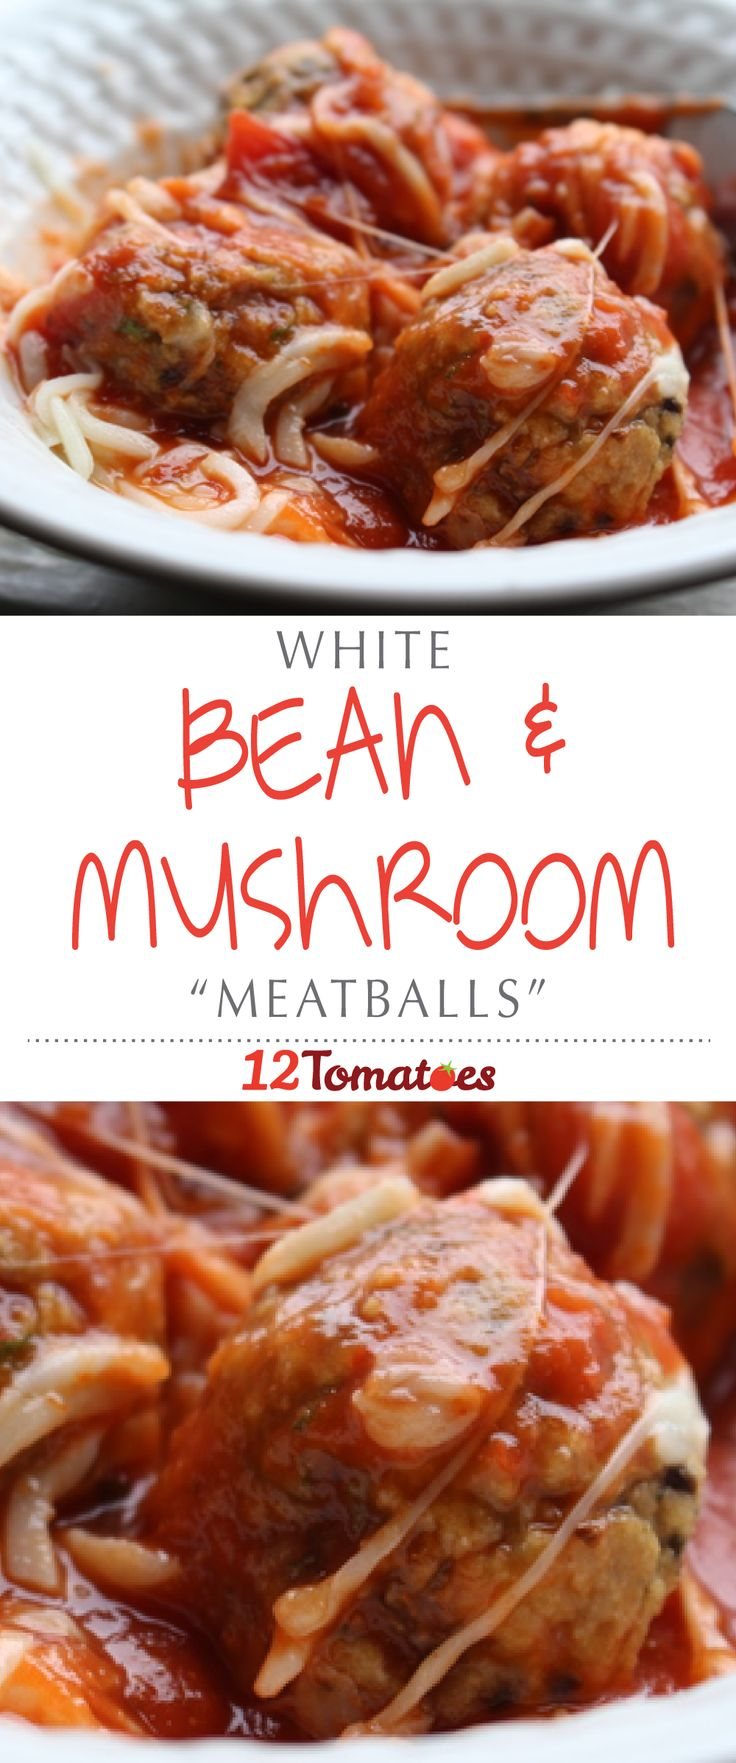 """White Bean & Mushroom """"Meatballs""""   We're meat-lovers over here all right, but that doesn't mean we can't appreciate (and absolutely adore) certain vegetarian dishes!"""